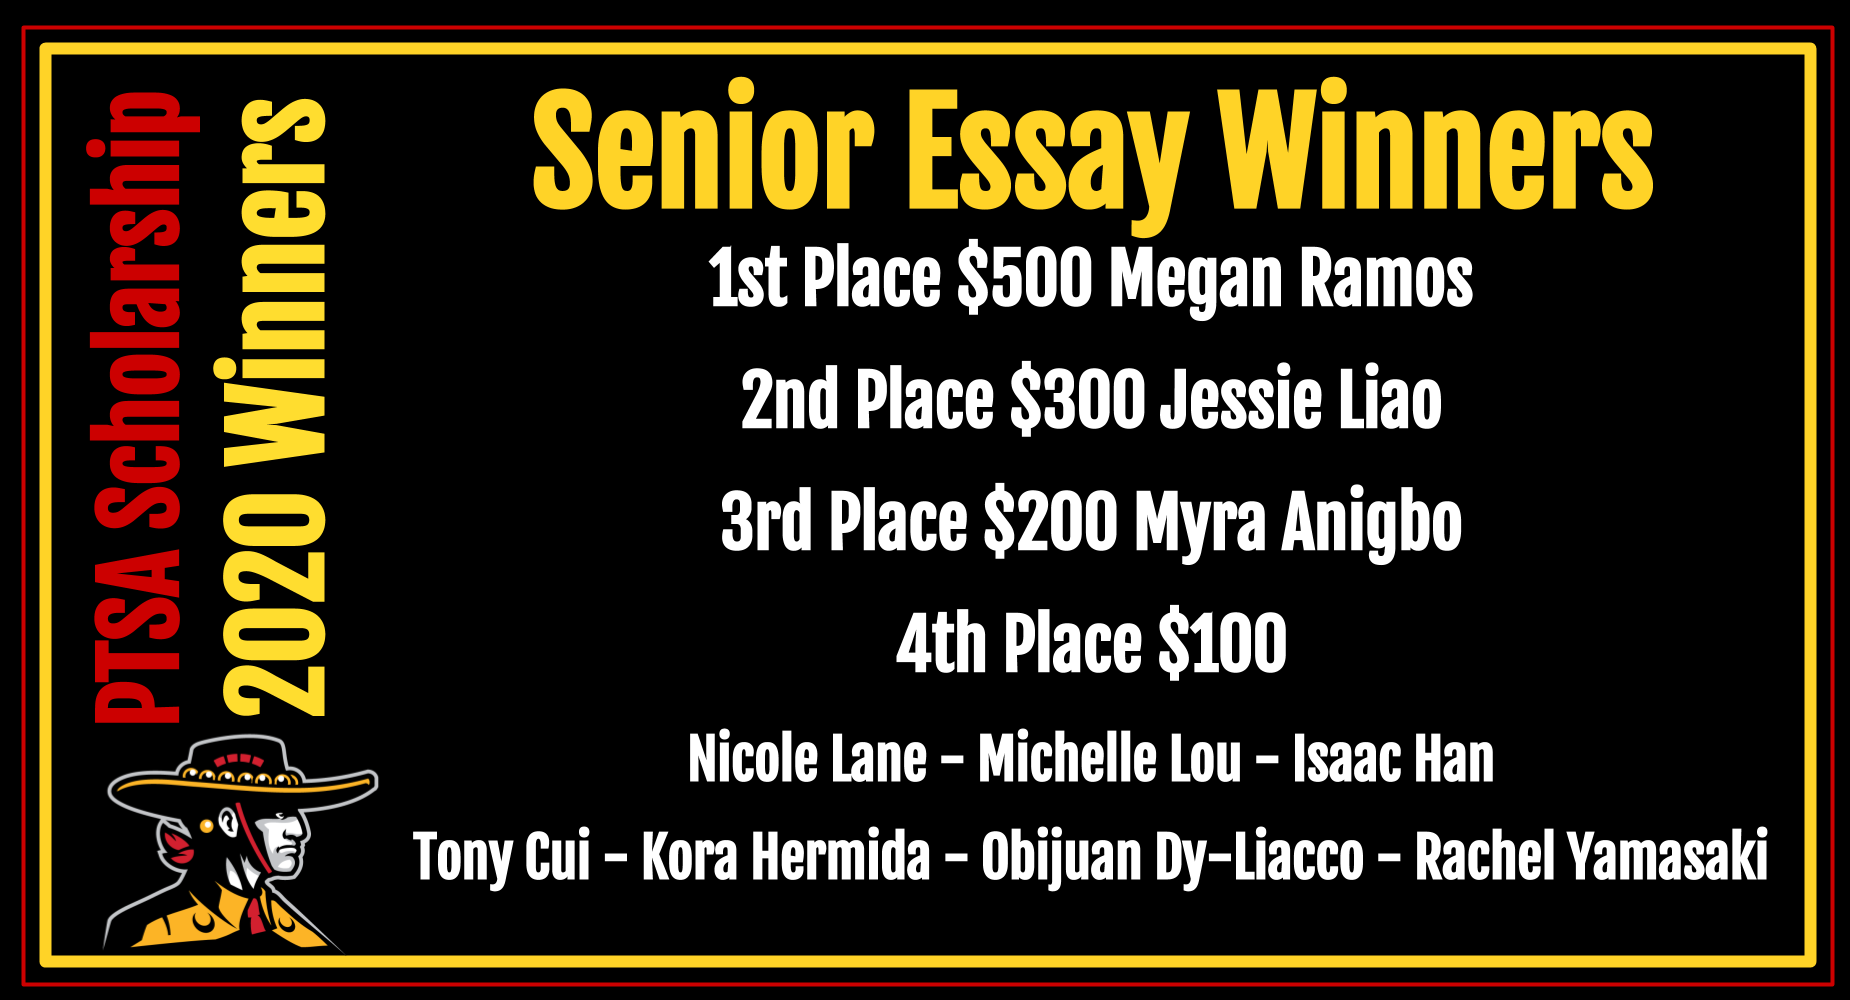 Senior Essay Winners